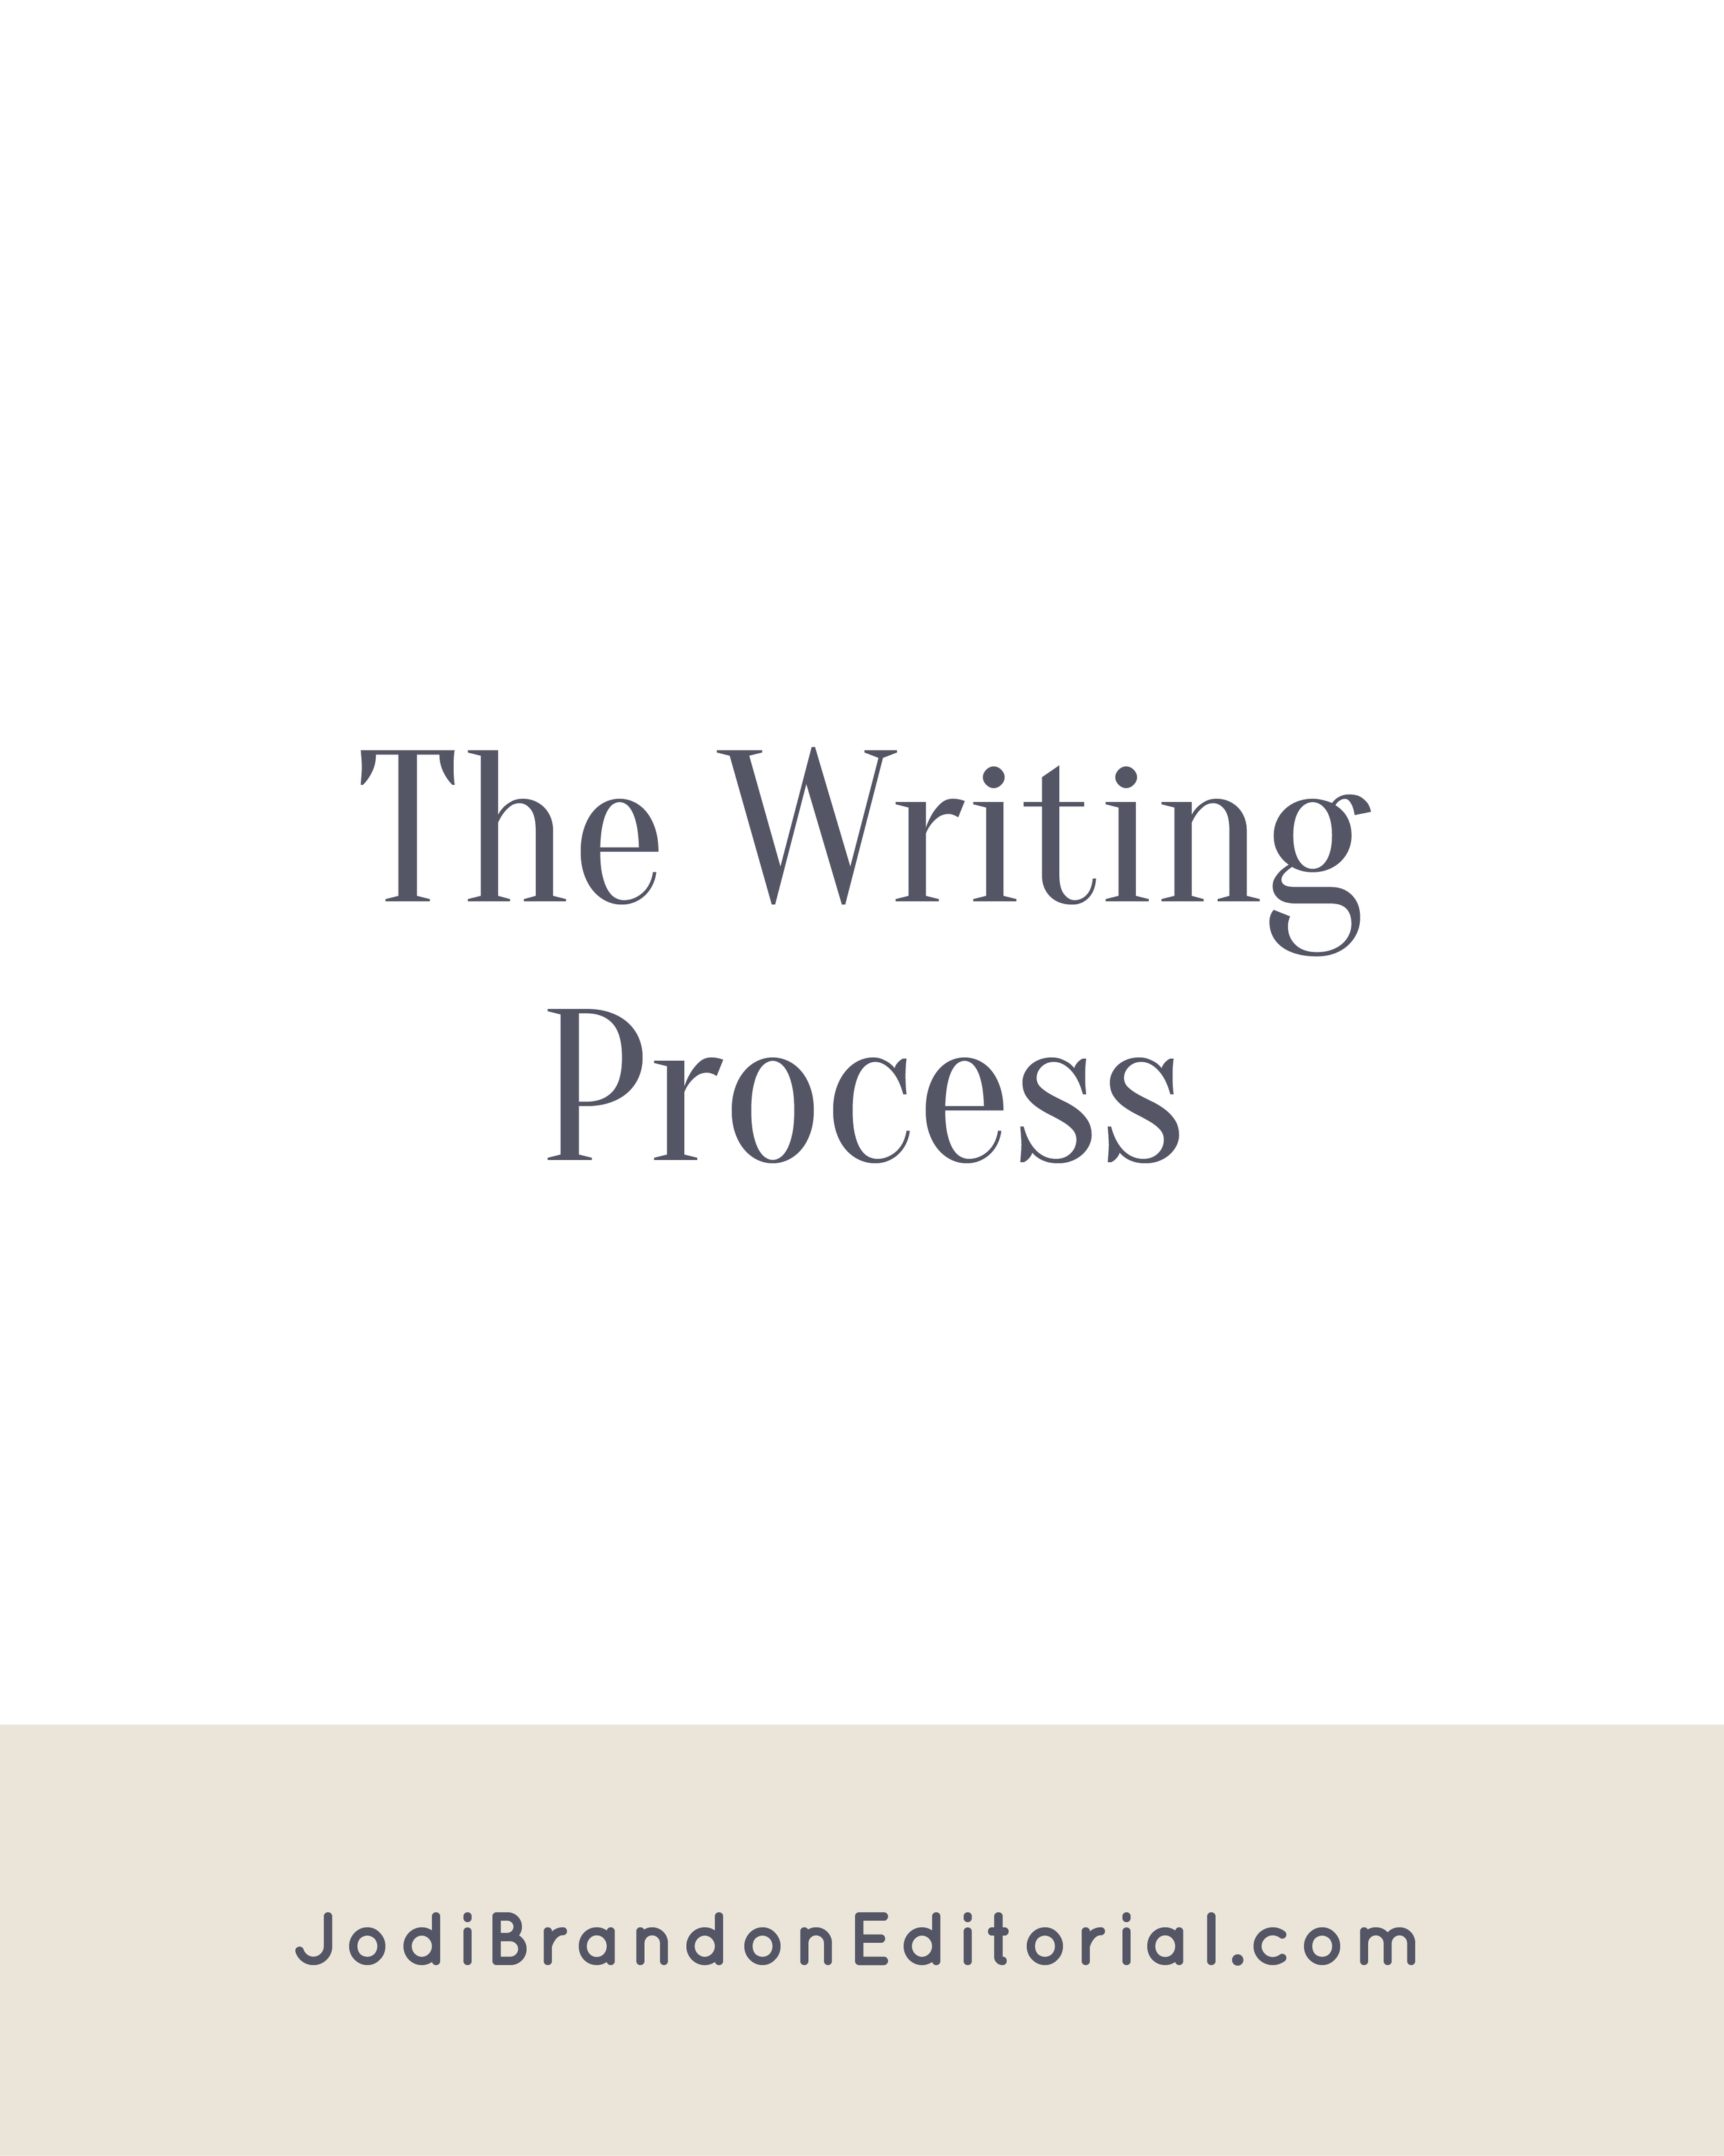 Sometimes you'll see the writing process as having four steps: writing, revising, editing, and publishing. In that scenario, prewriting is included in the writing phase. Prewriting is a separate step from writing. I cannot over-emphasize that point! If you sit down to write 50,000 (or more words) with a topic and a few key points, but nothing else, you're in trouble. Prewriting is the legwork and preparation to make the actual writing easier and faster. So really, the writing process has 5 steps.     Jodi Brandon Editorial